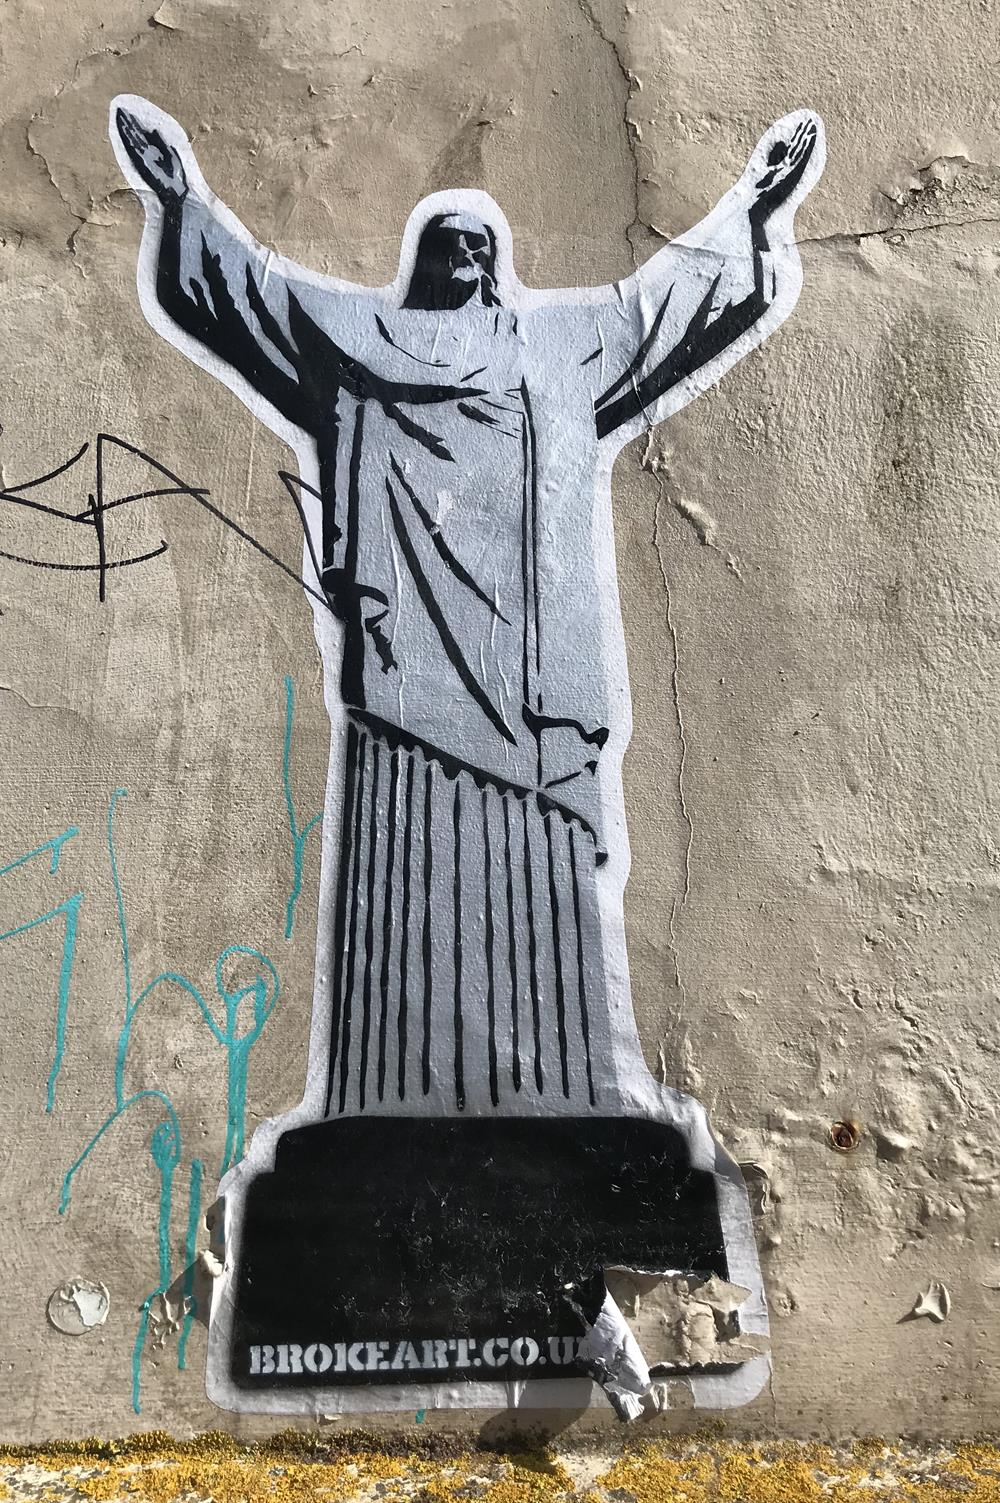 Jesus doing the YMCA arm movements. This is the Y from YMCA